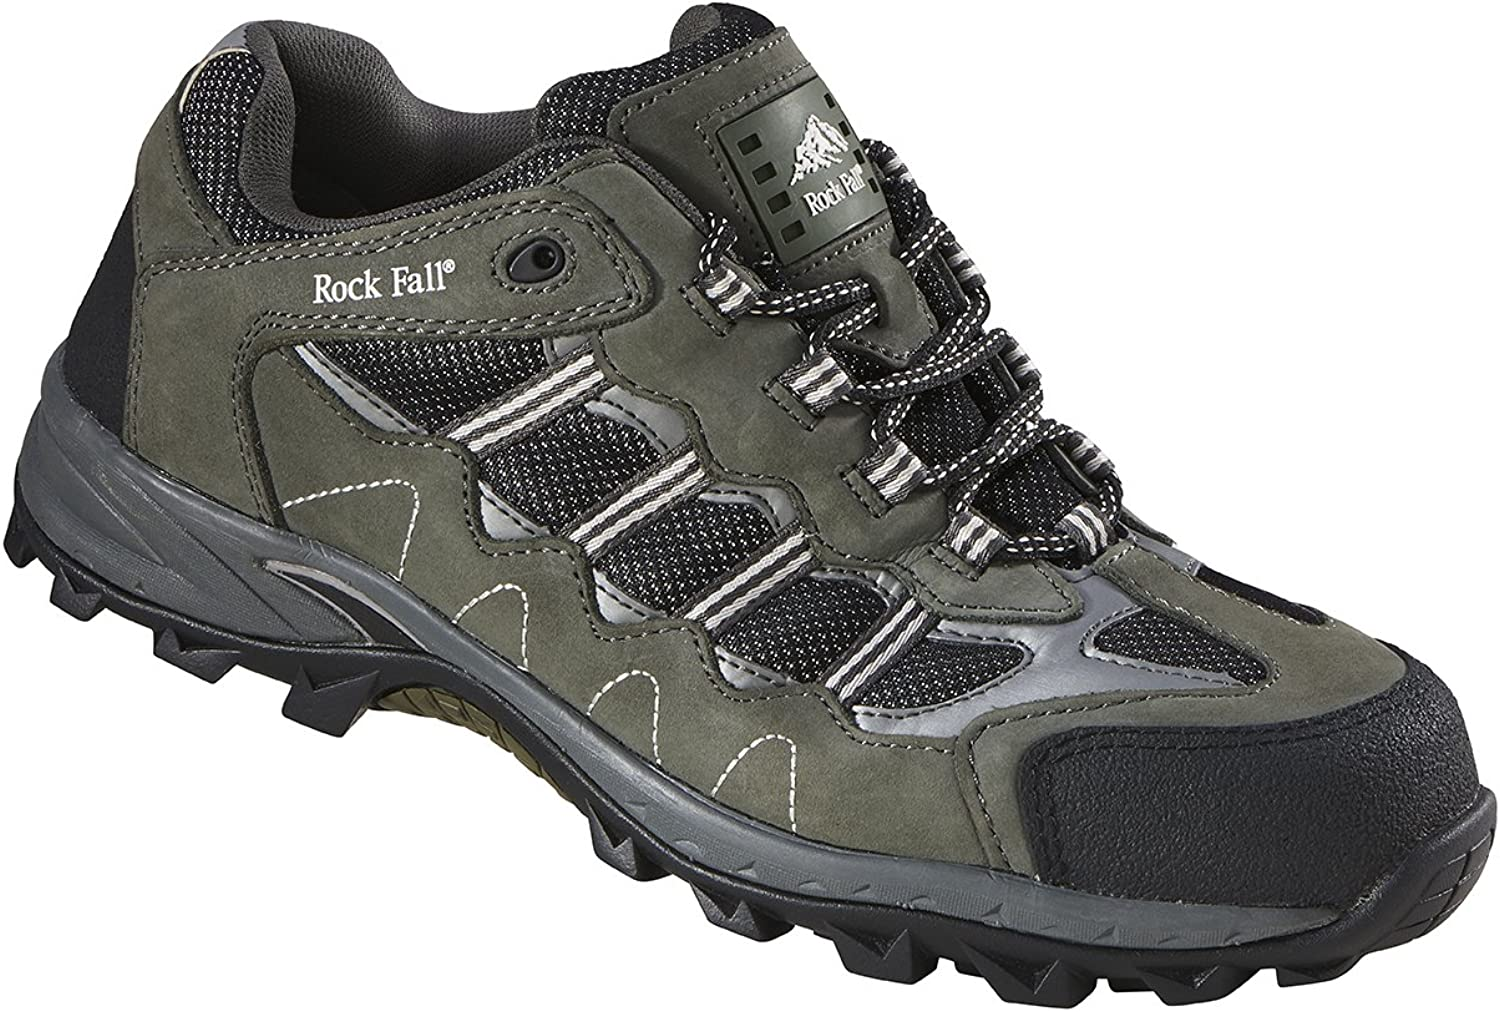 Rockfall Men's Summit Carbon Metal Free Safety Trainer US Size 7 Grey